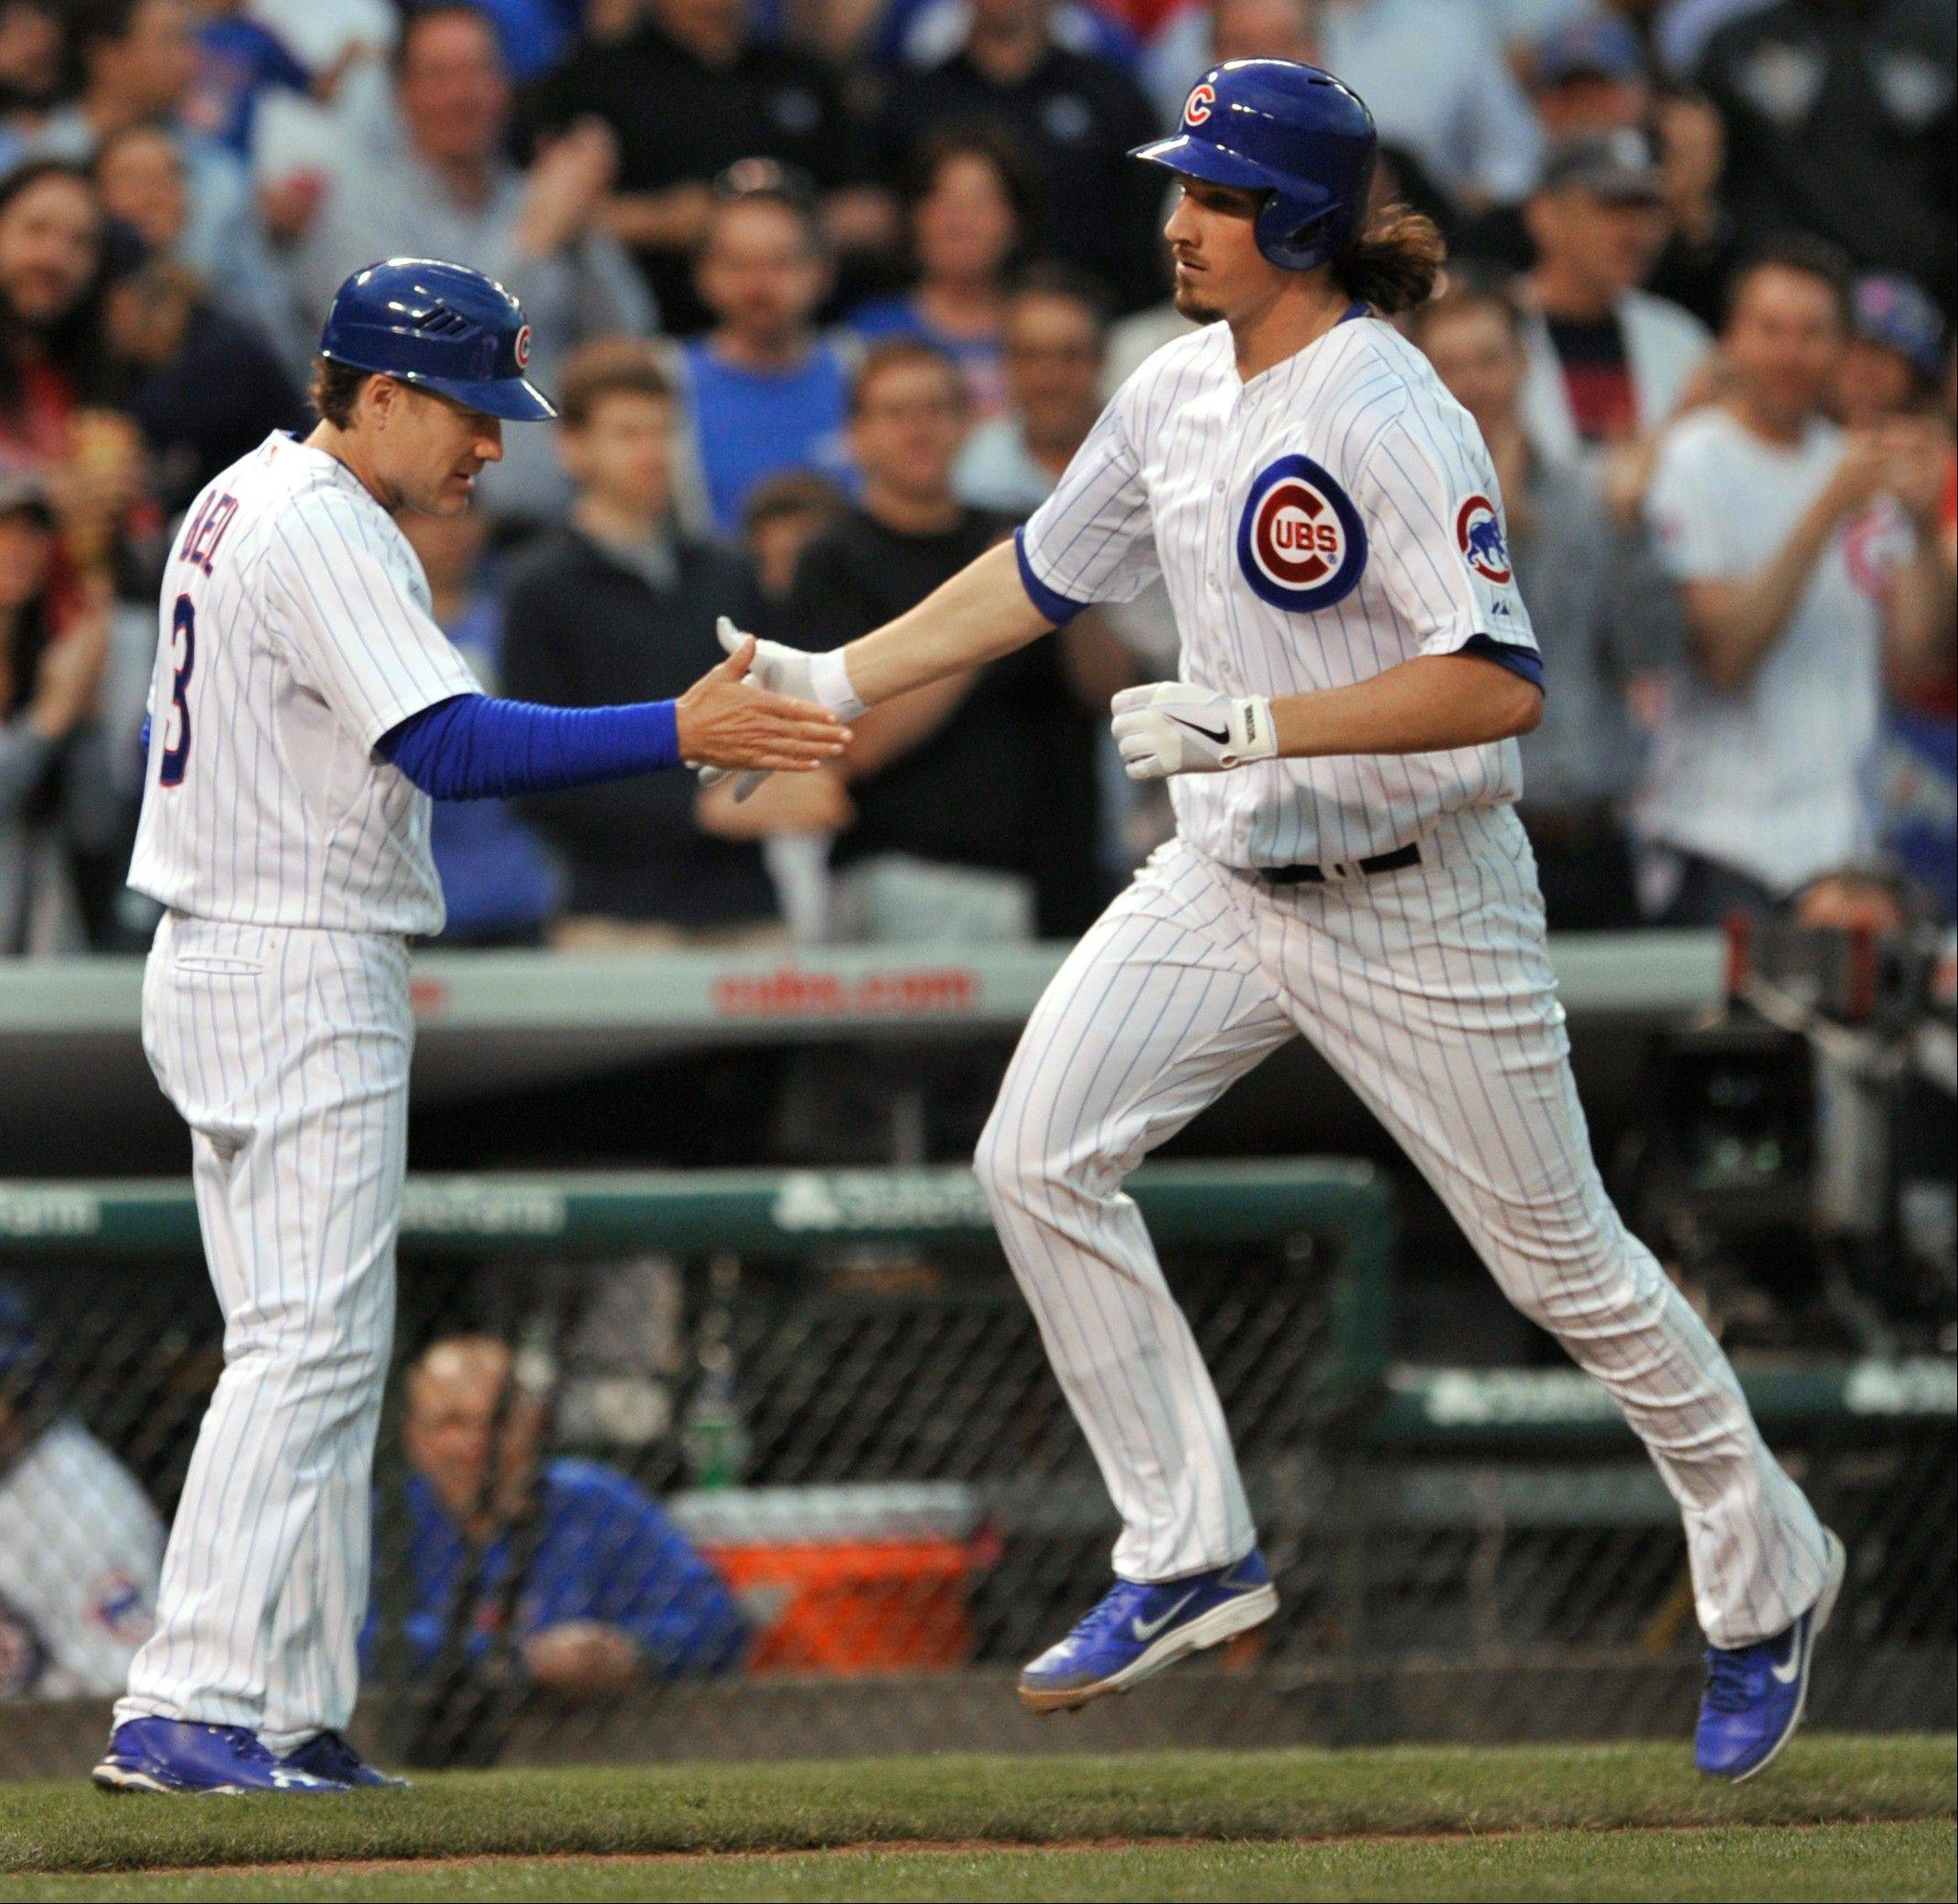 The Cubs' Jeff Samardzija, right, celebrates with third-base coach David Bell after hitting a 2-run home run during the second inning Wednesday night against the Colorado Rockies at Wrigley Field. The Cubs won 6-3.